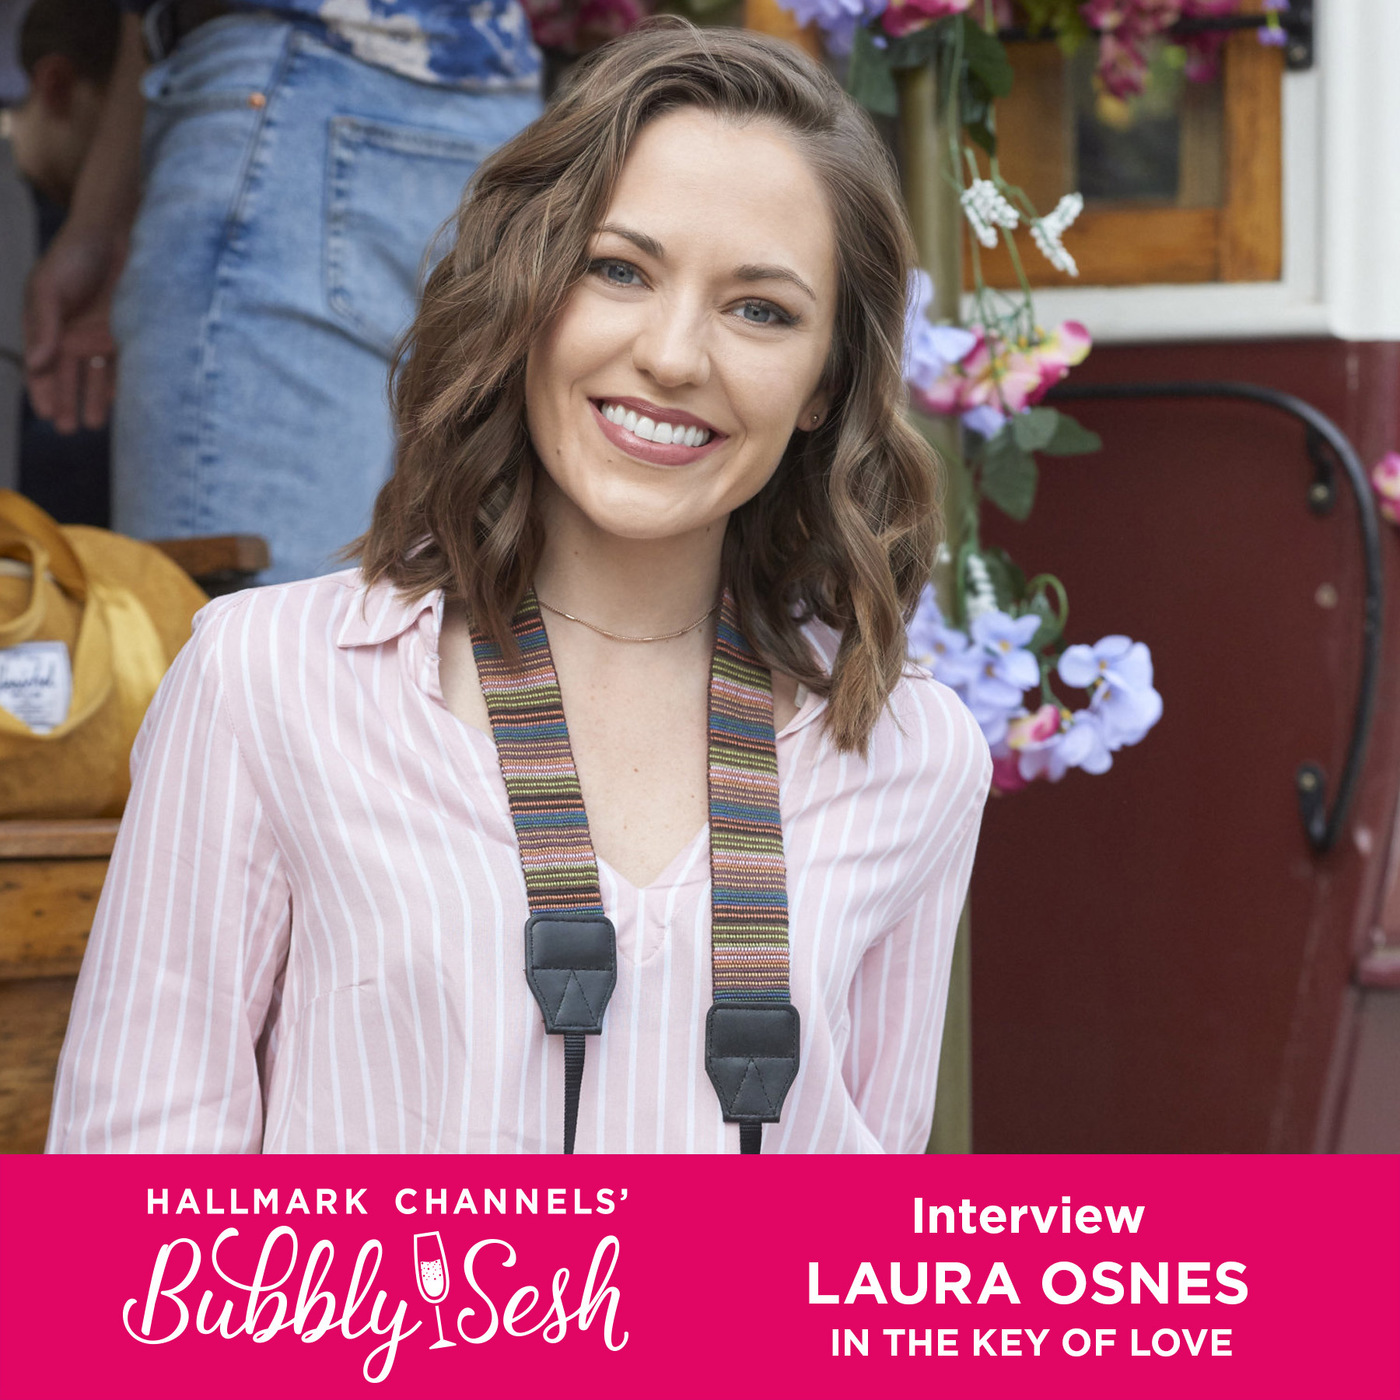 Laura Osnes Interview: In the Key of Love